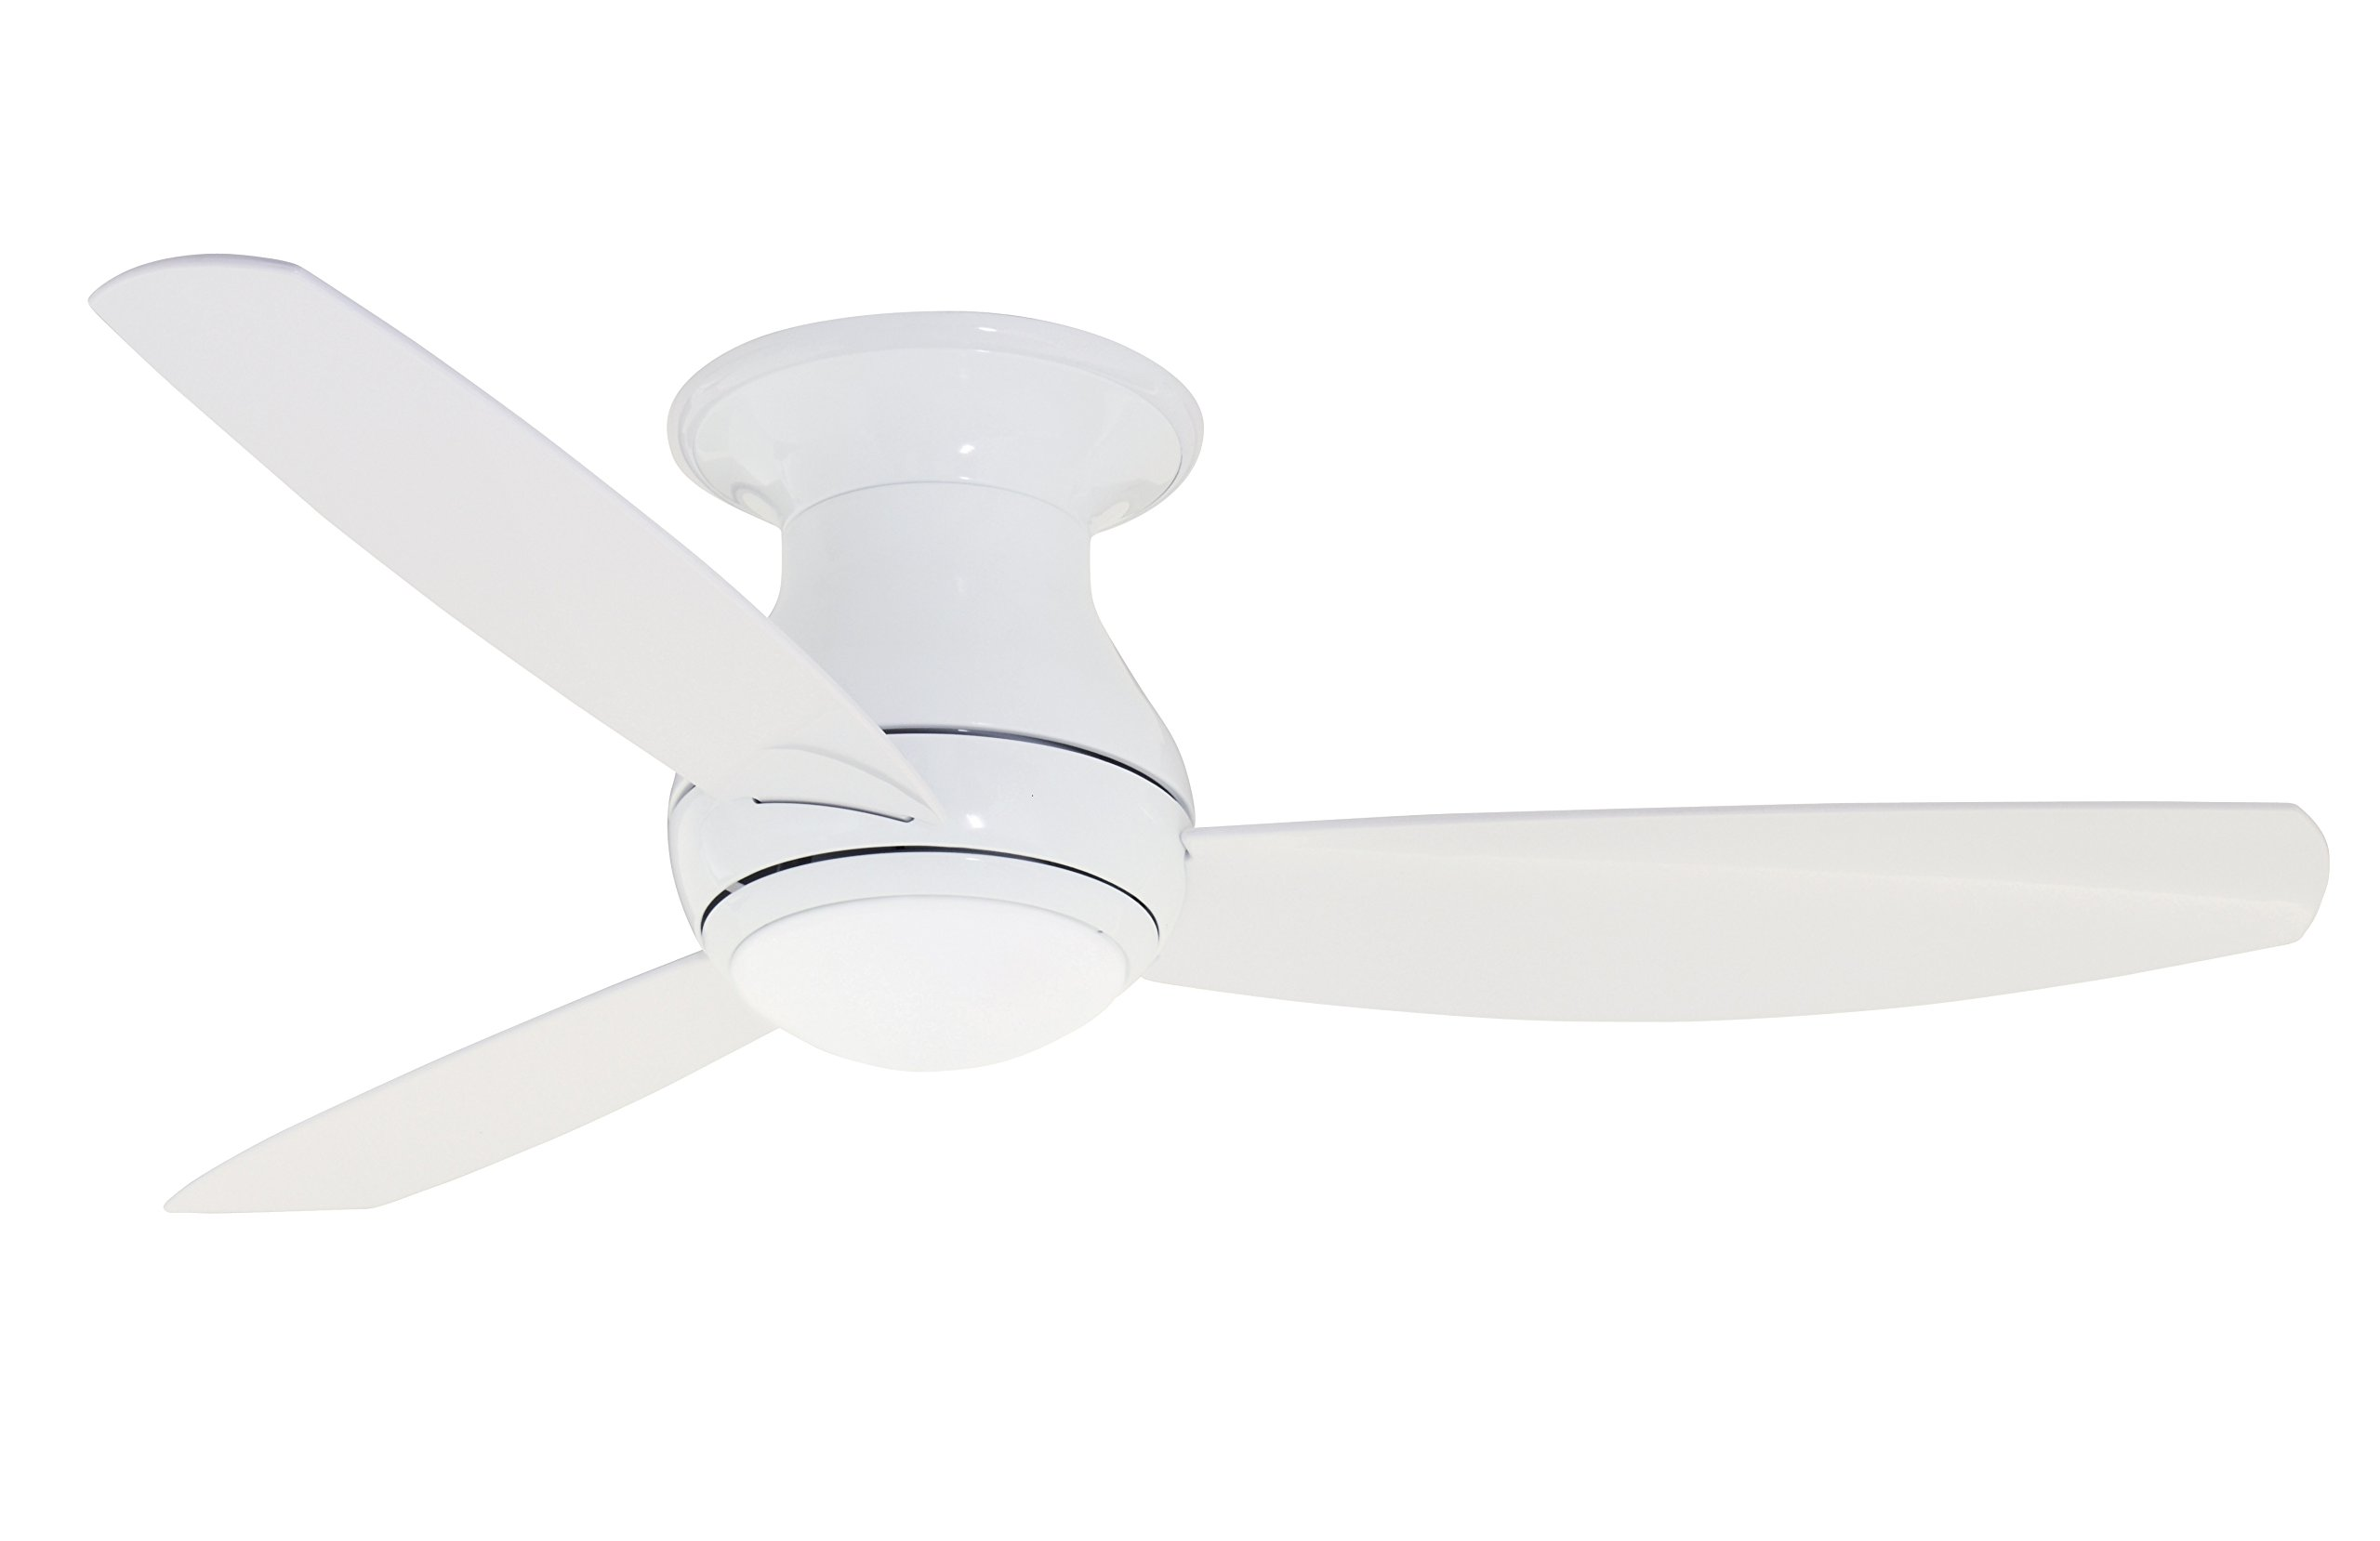 Emerson CF152LWW Curva Sky 52-inch Modern Ceiling Fan, 3-Blade Ceiling Fan with LED Lighting and 6-Speed Remote Control